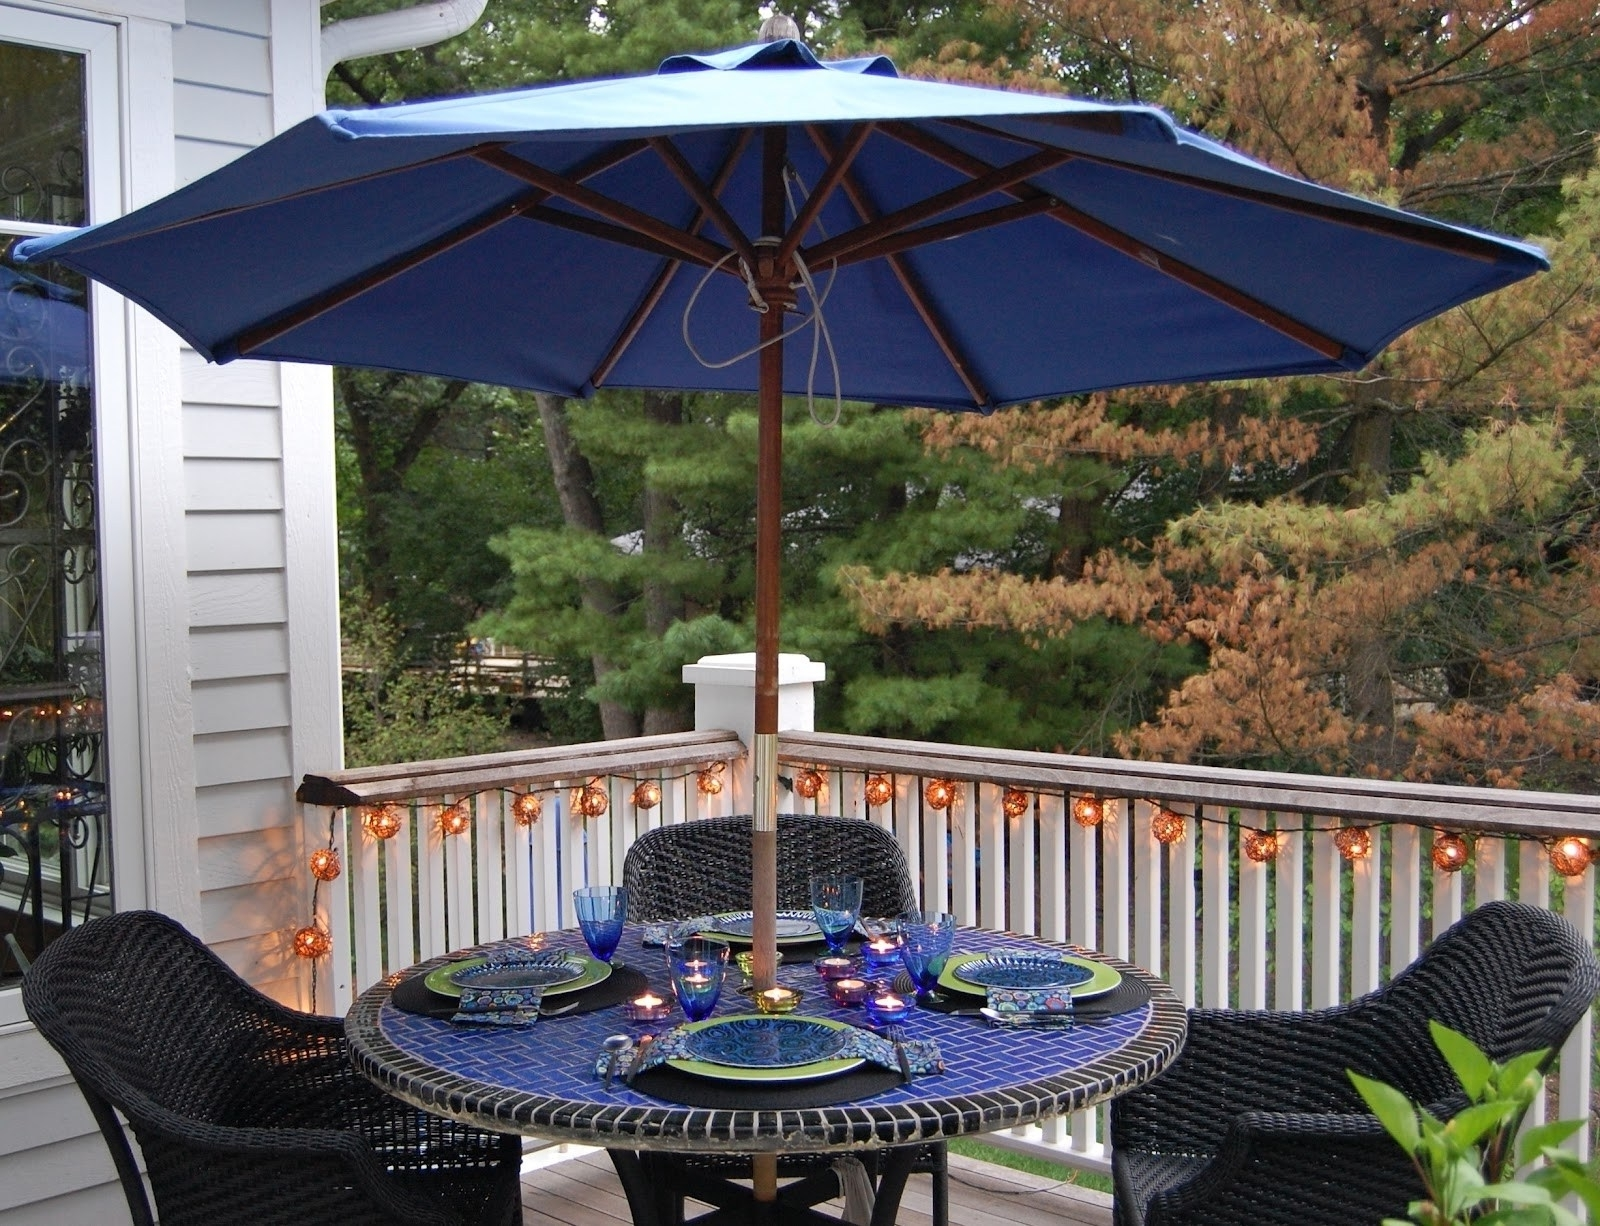 Best And Newest Small Patio Umbrellas Regarding Patio: Amazing Small Patio Table With Umbrella Outdoor Furniture (View 2 of 20)